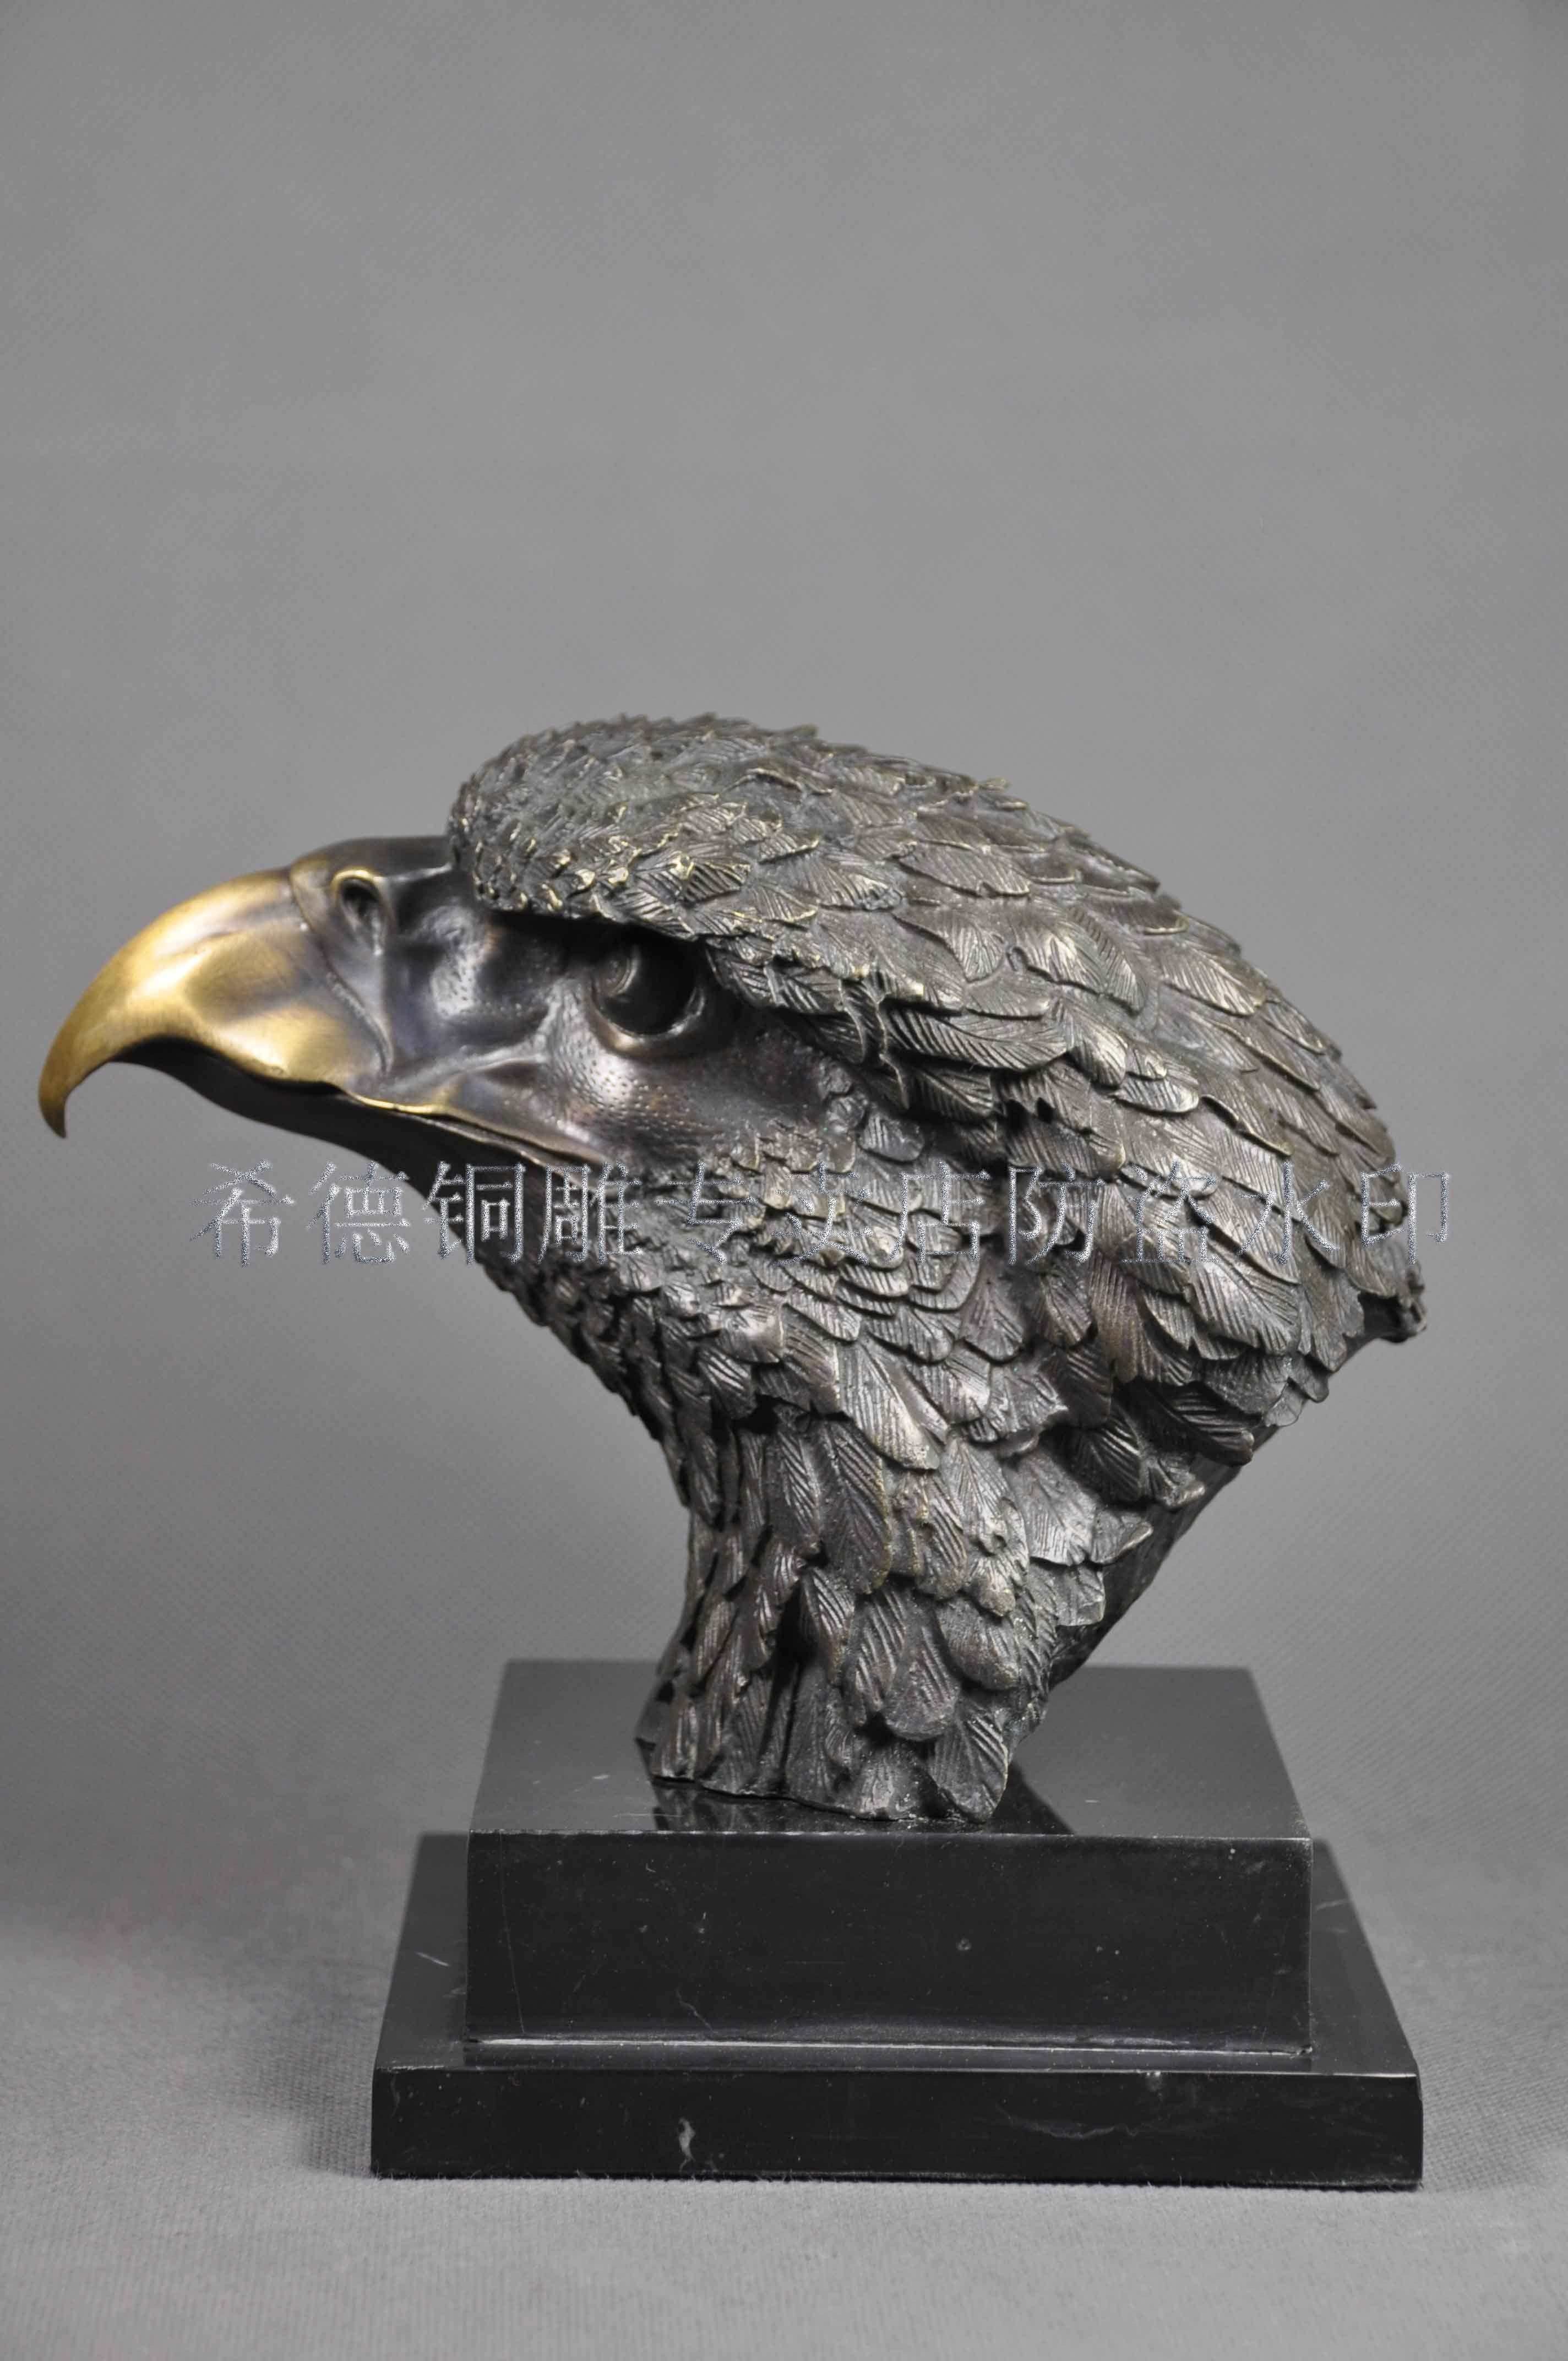 Quality gift bronze sculpture, copper dw-142 crafts home decoration factory house Copper ArtsQuality gift bronze sculpture, copper dw-142 crafts home decoration factory house Copper Arts